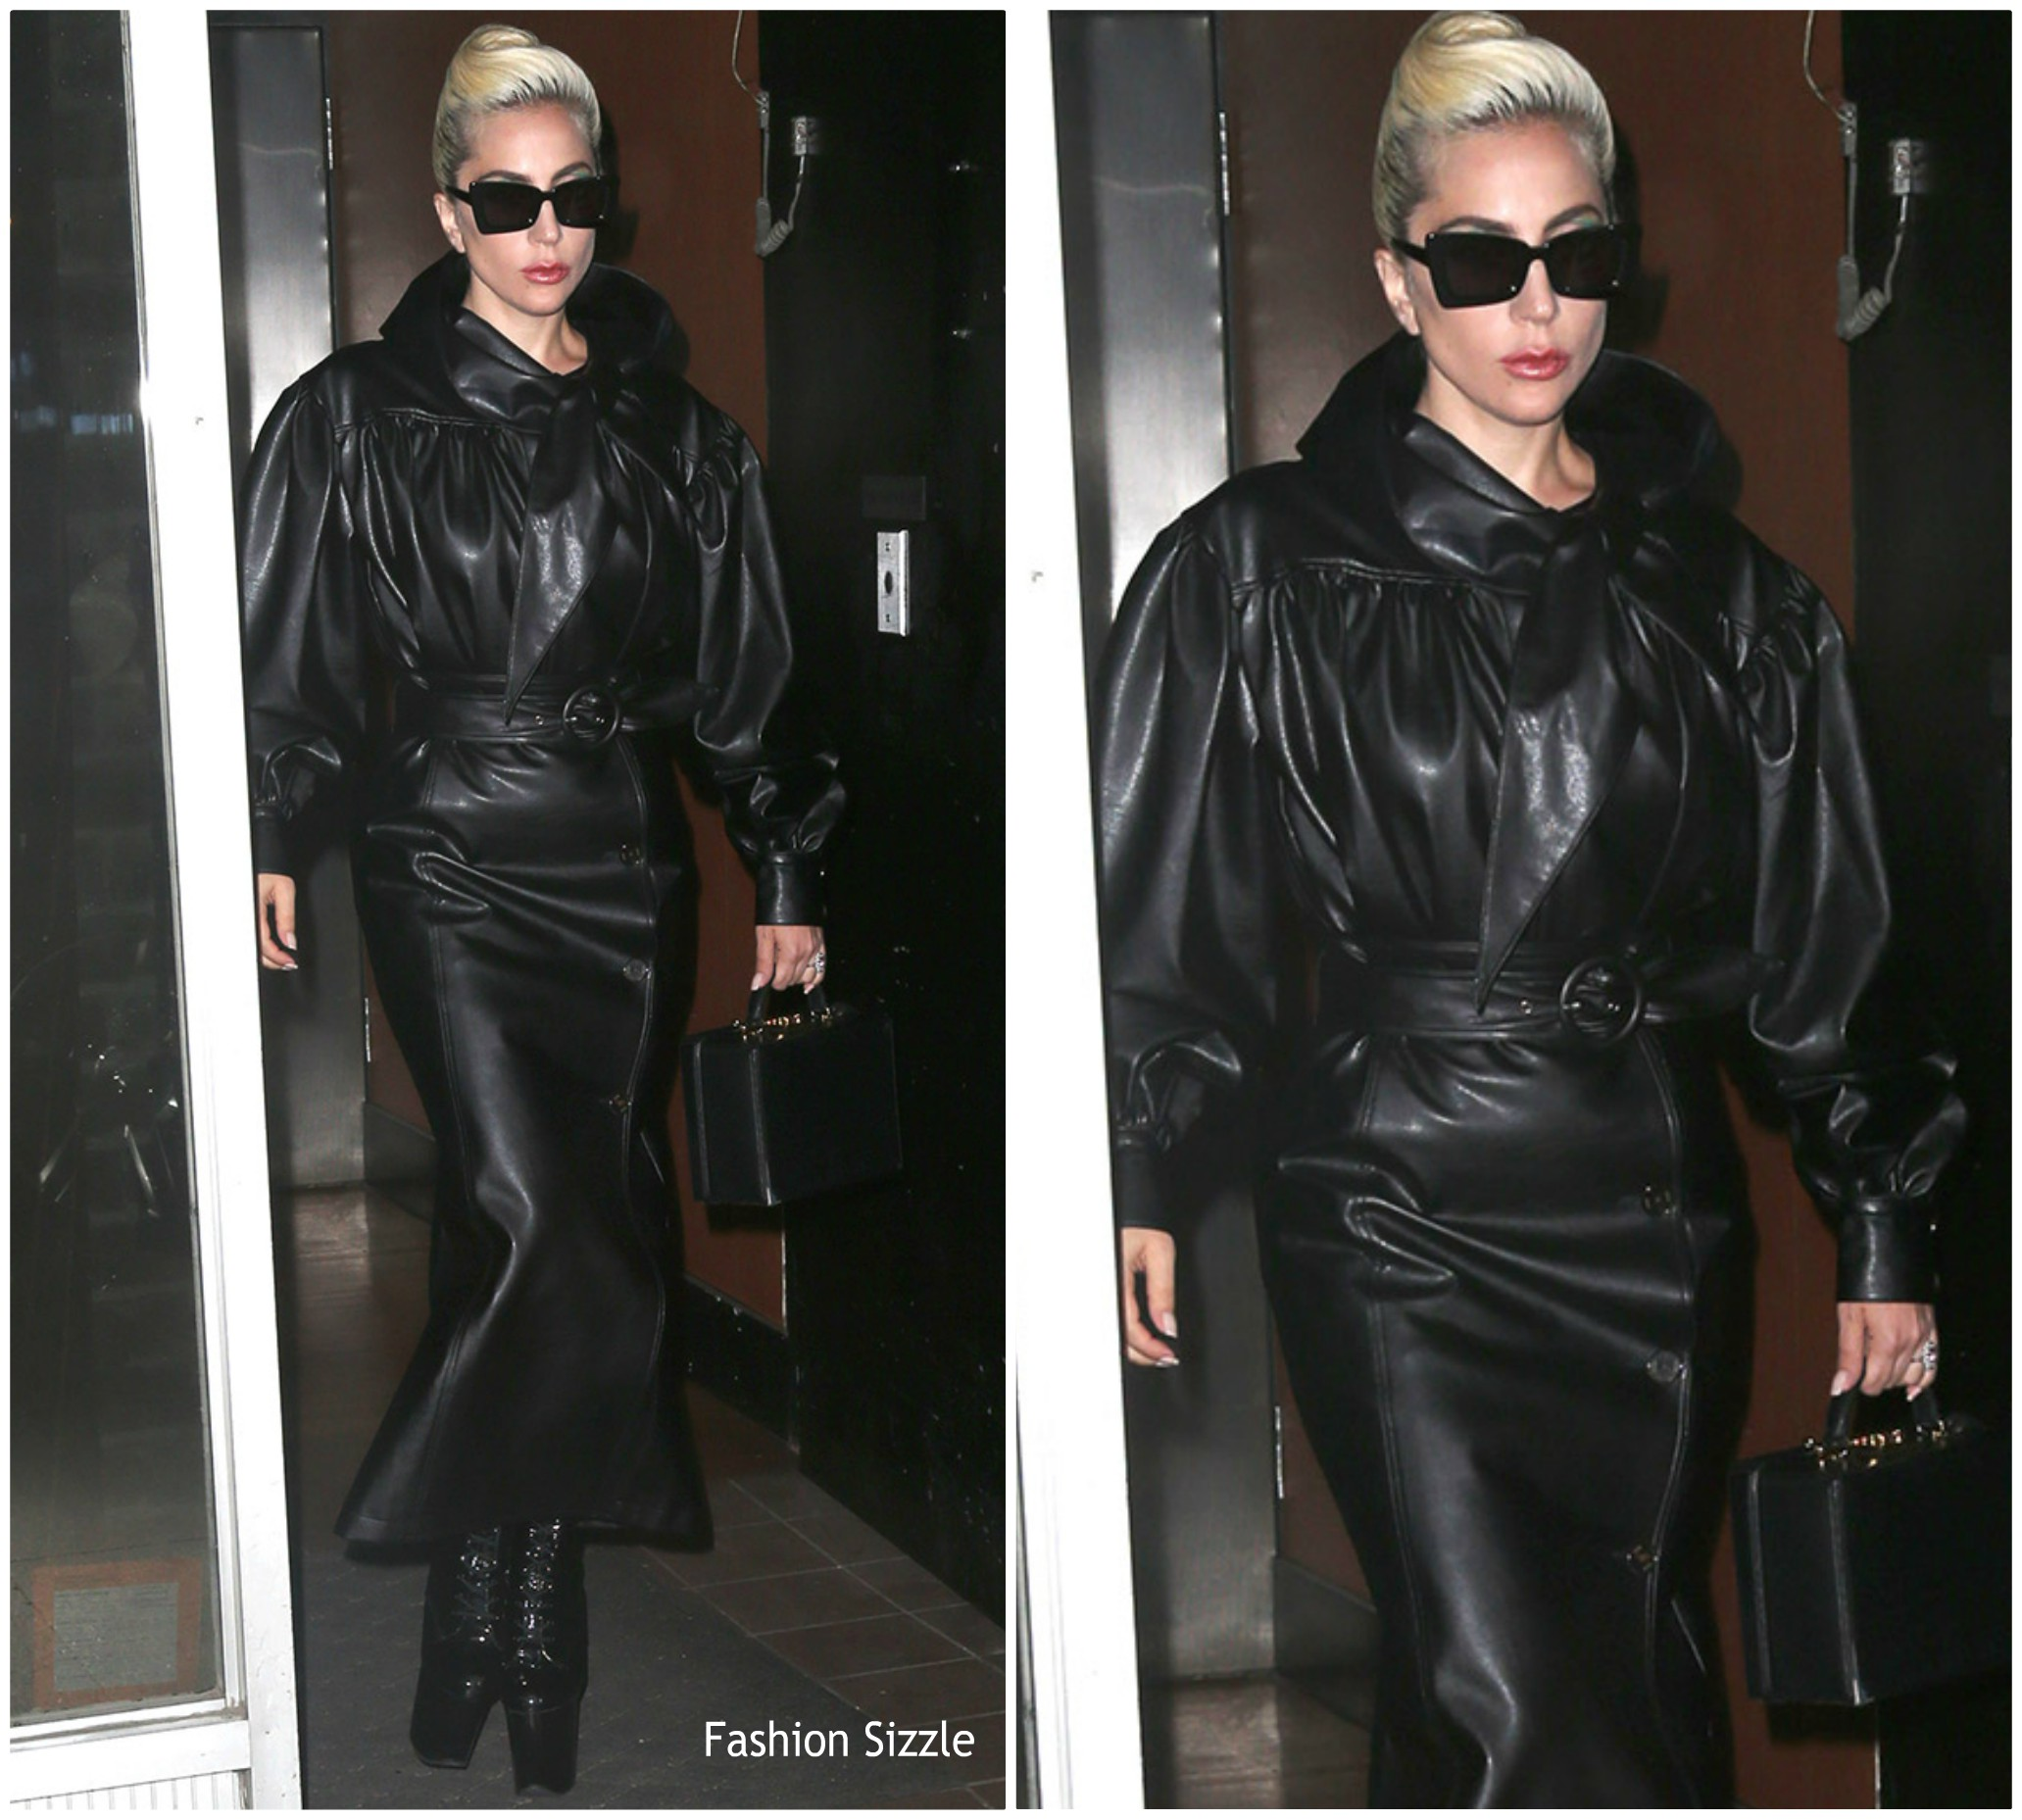 lady-gaga-in-ych-out-in-new-york